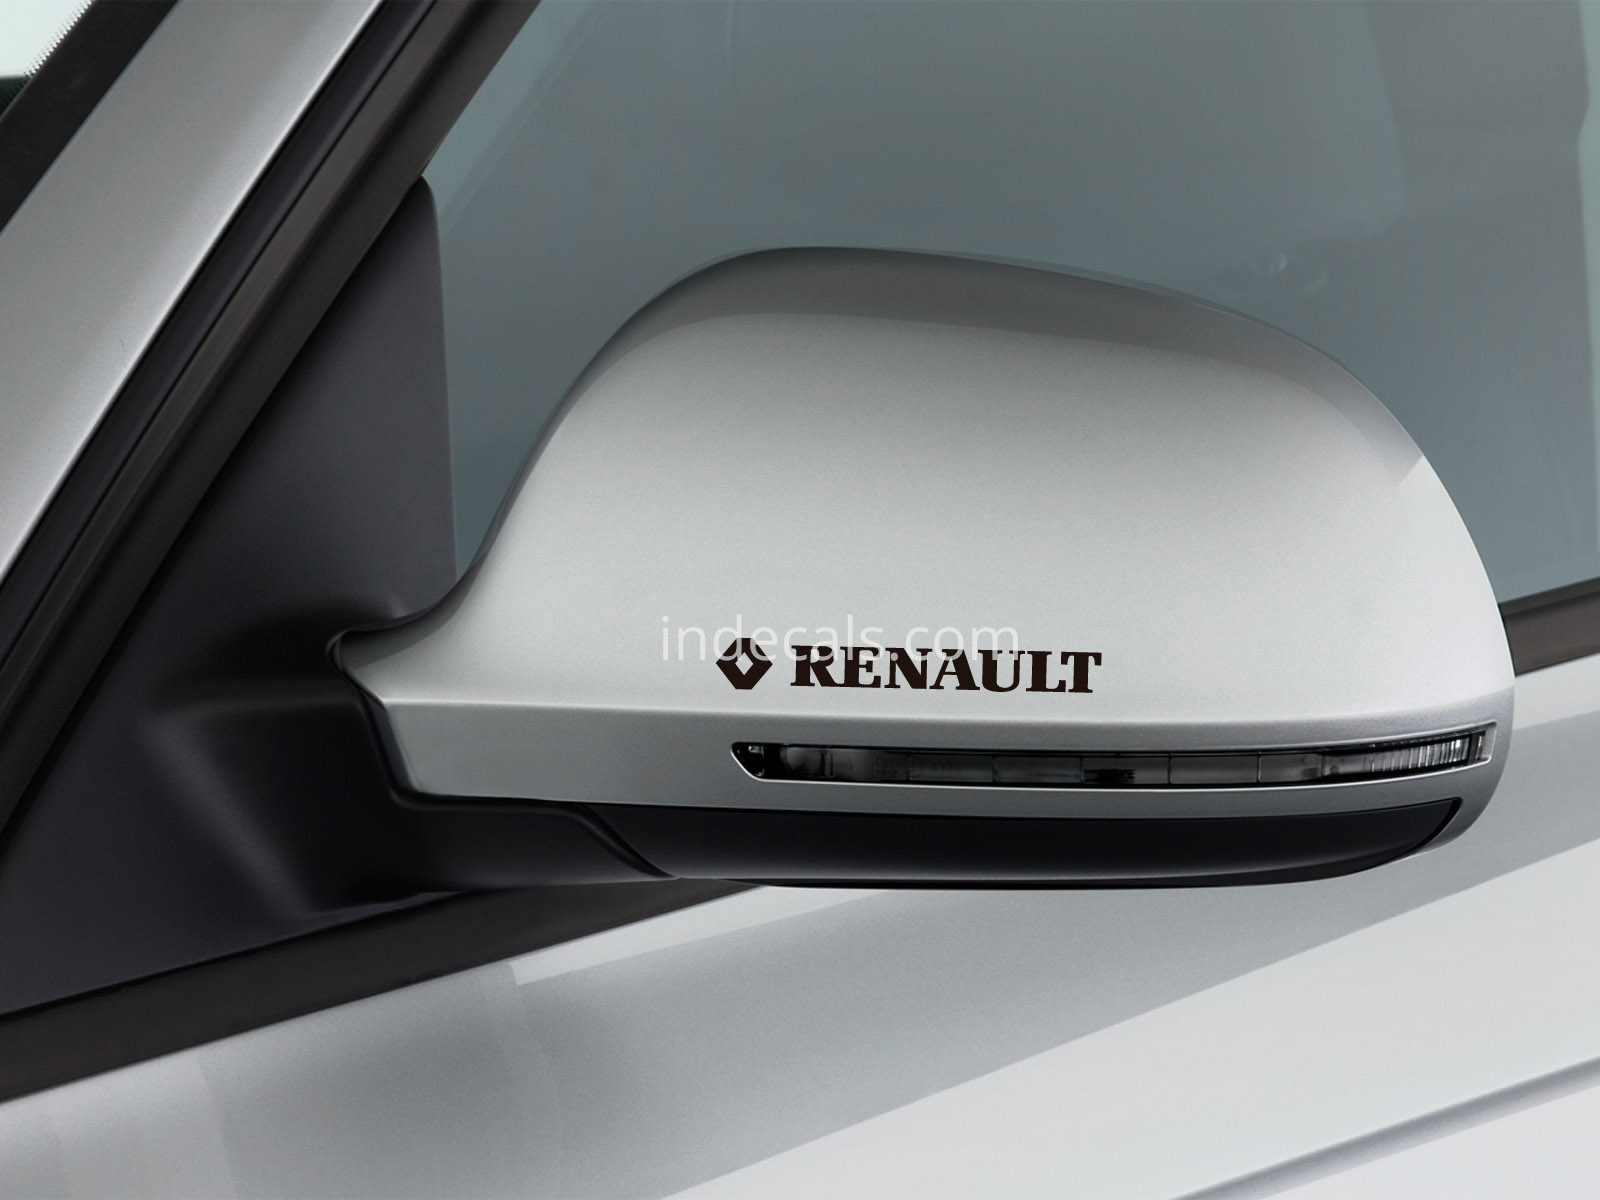 3 x Renault Stickers for Mirrors - Black